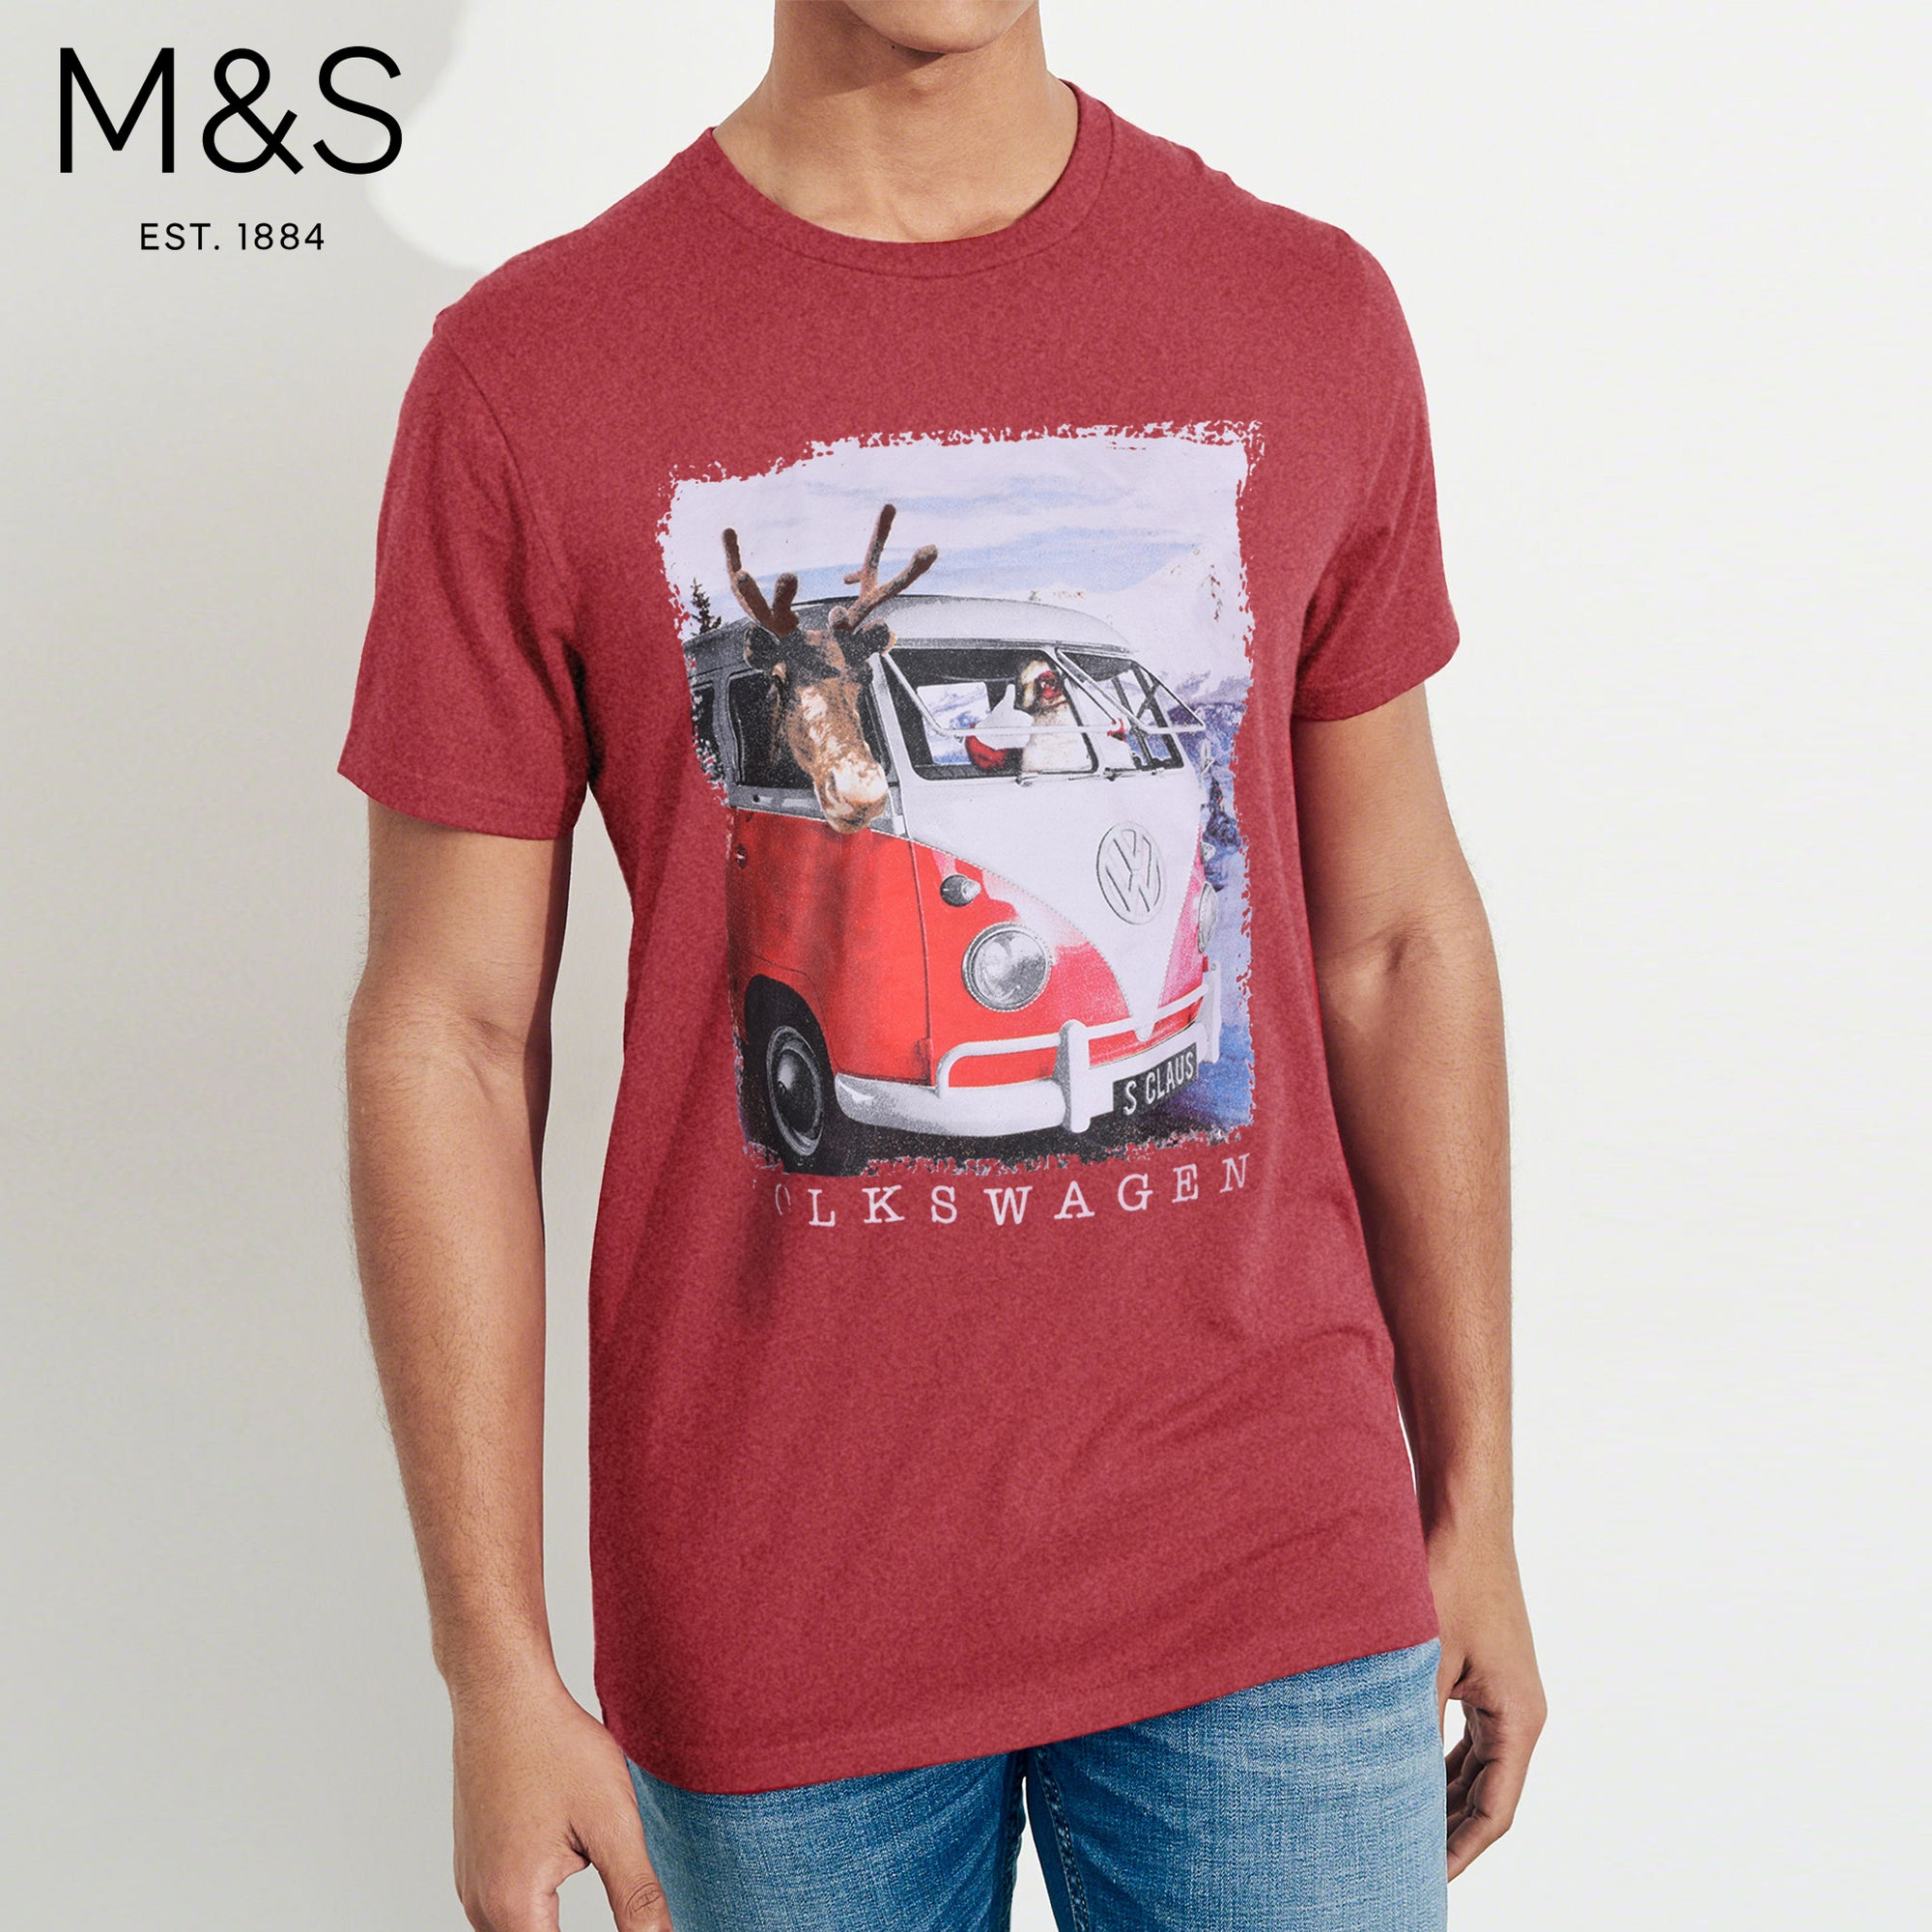 M&S Crew Neck Tee Shirt For Men-Red Melange-BE4486